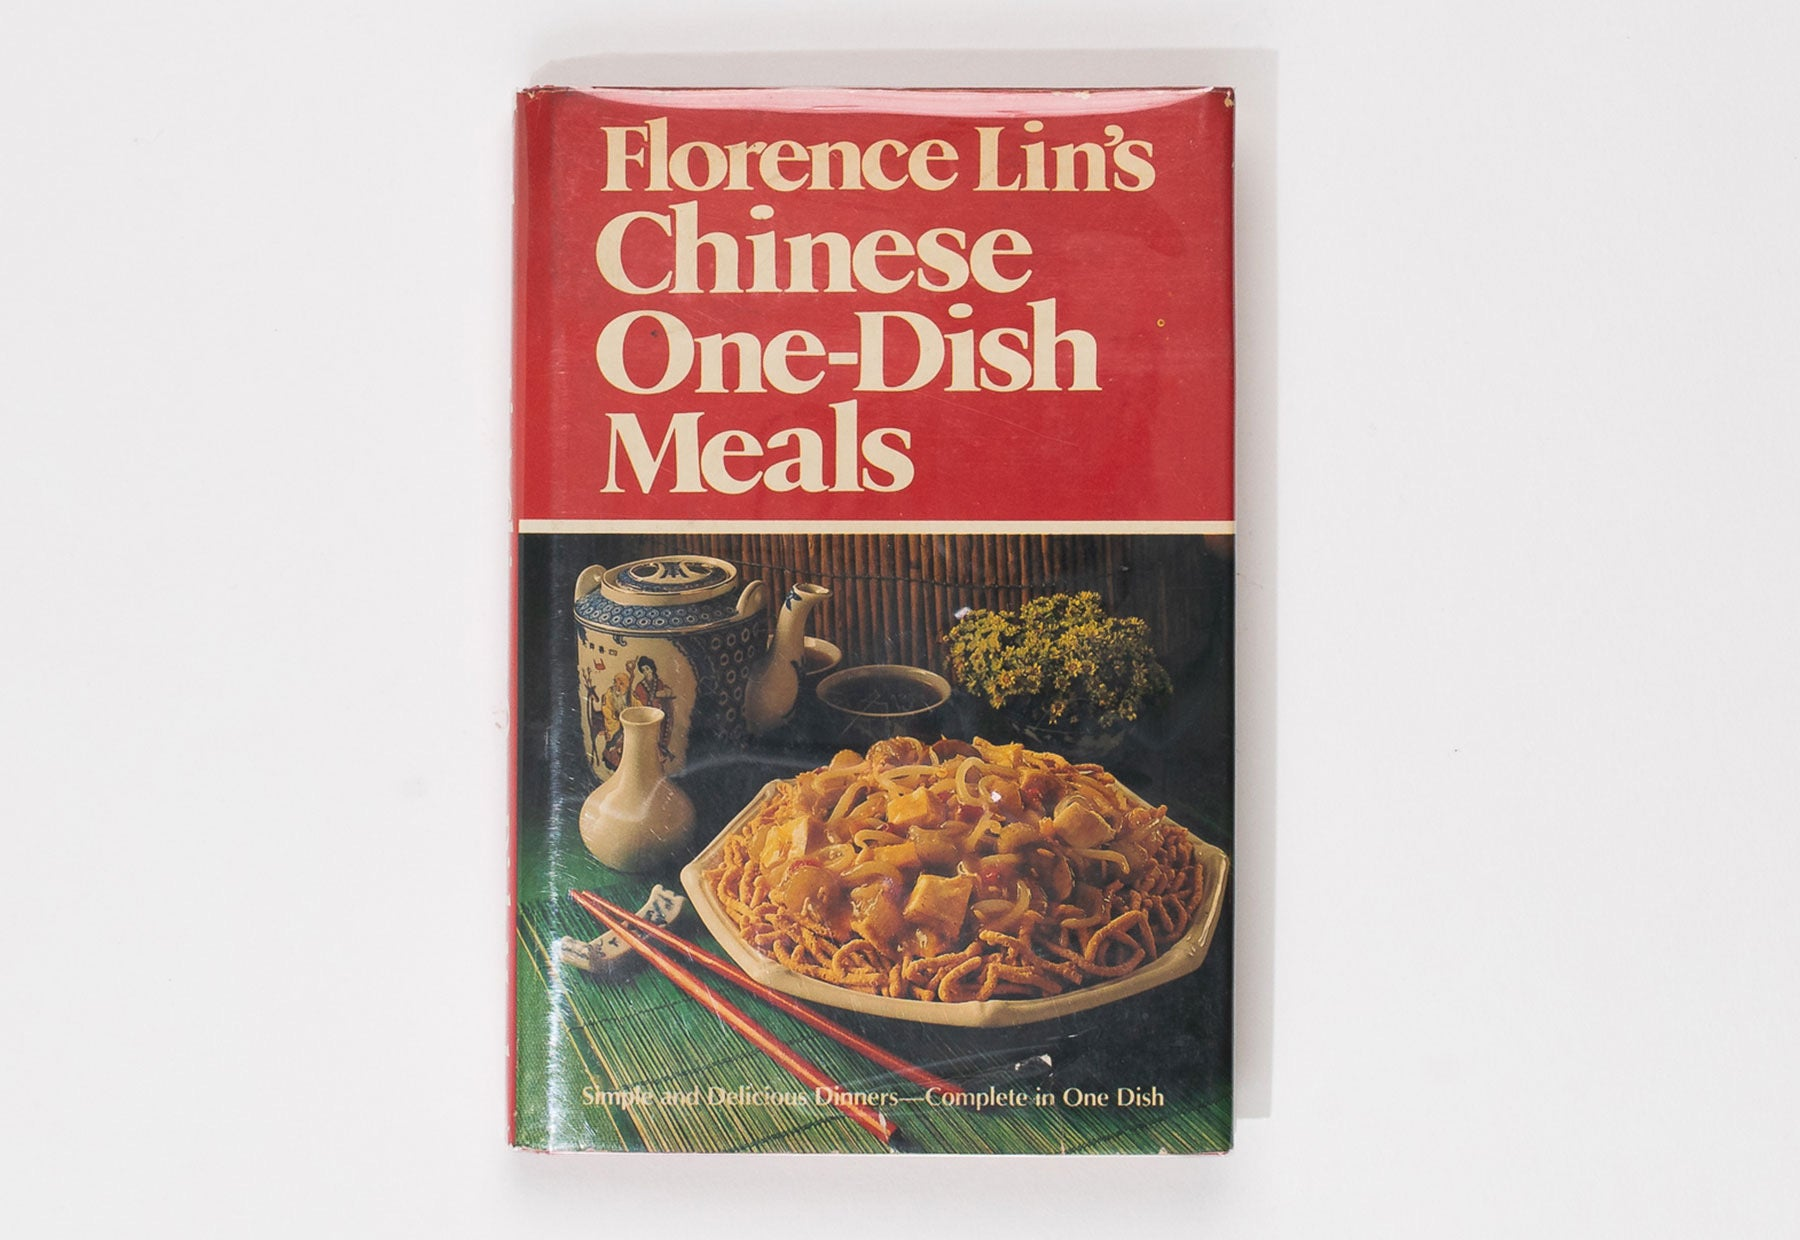 Florence Lin's Chinese One-Dish Meals